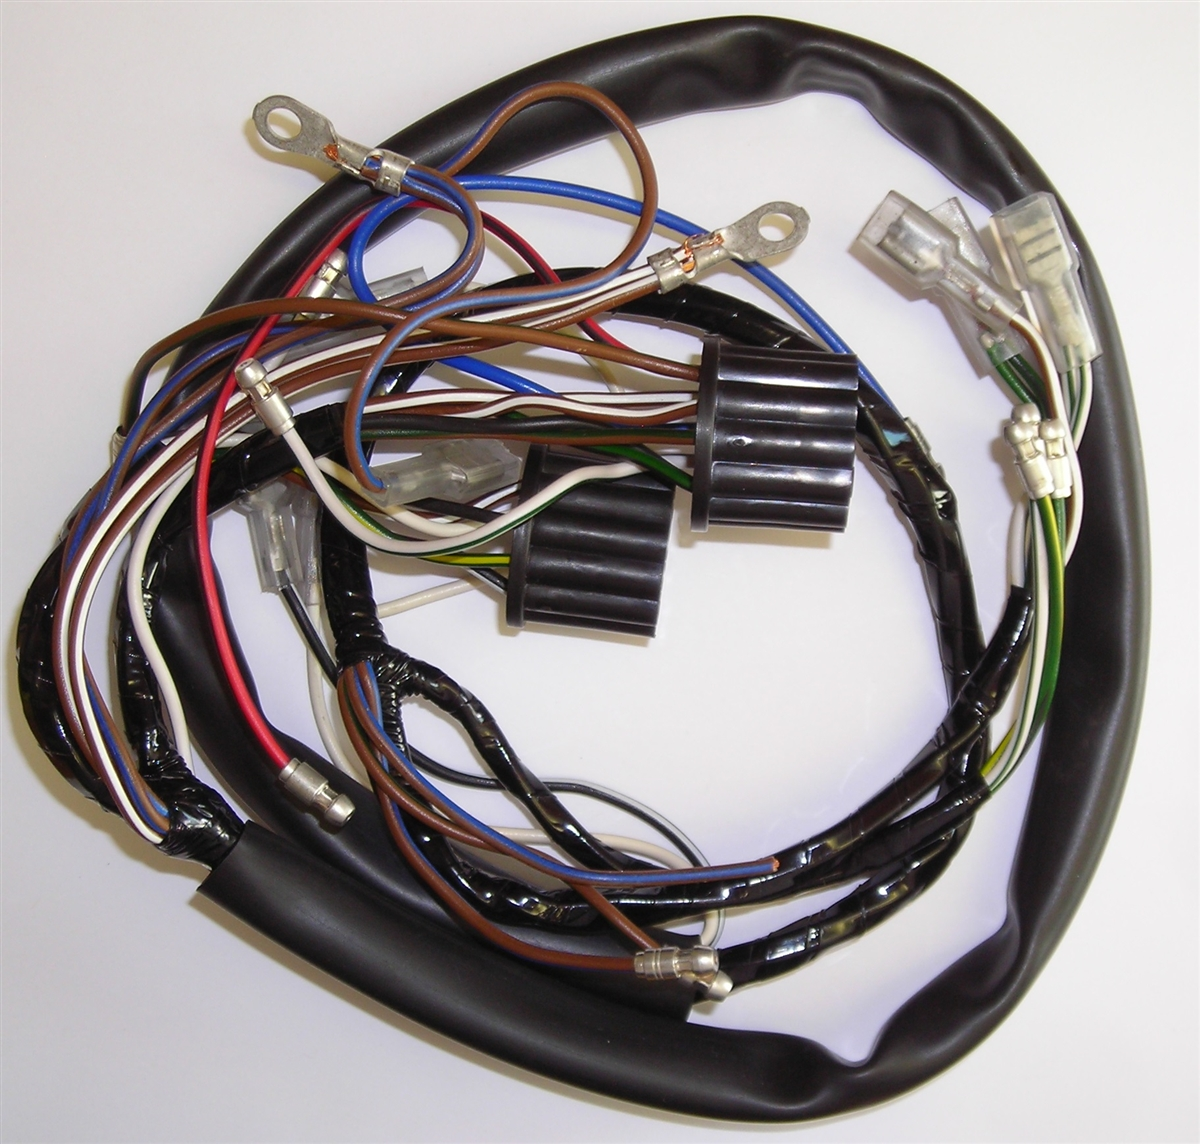 triumph motorcycle wiring harness rh britishwiring com wiring harness kit for motorcycles wiring diagram for victory motorcycles